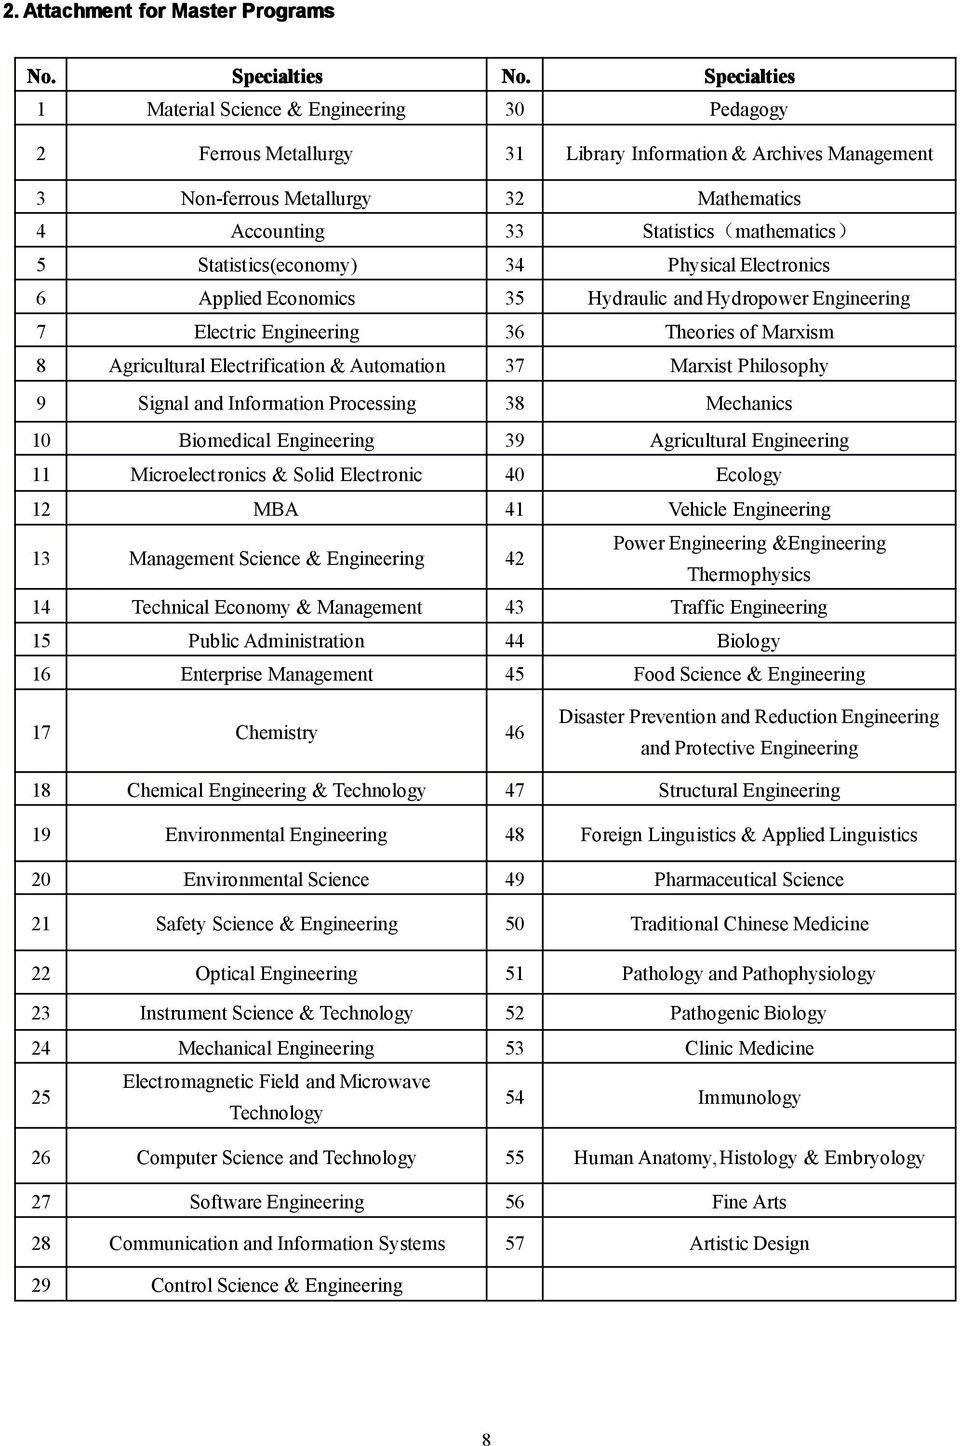 Electrification & Automation 37 Marxist Philosophy 9 Signal and Information Processing 38 Mechanics 10 Biomedical Engineering 39 Agricultural Engineering 11 Microelectronics & Solid Electronic 40